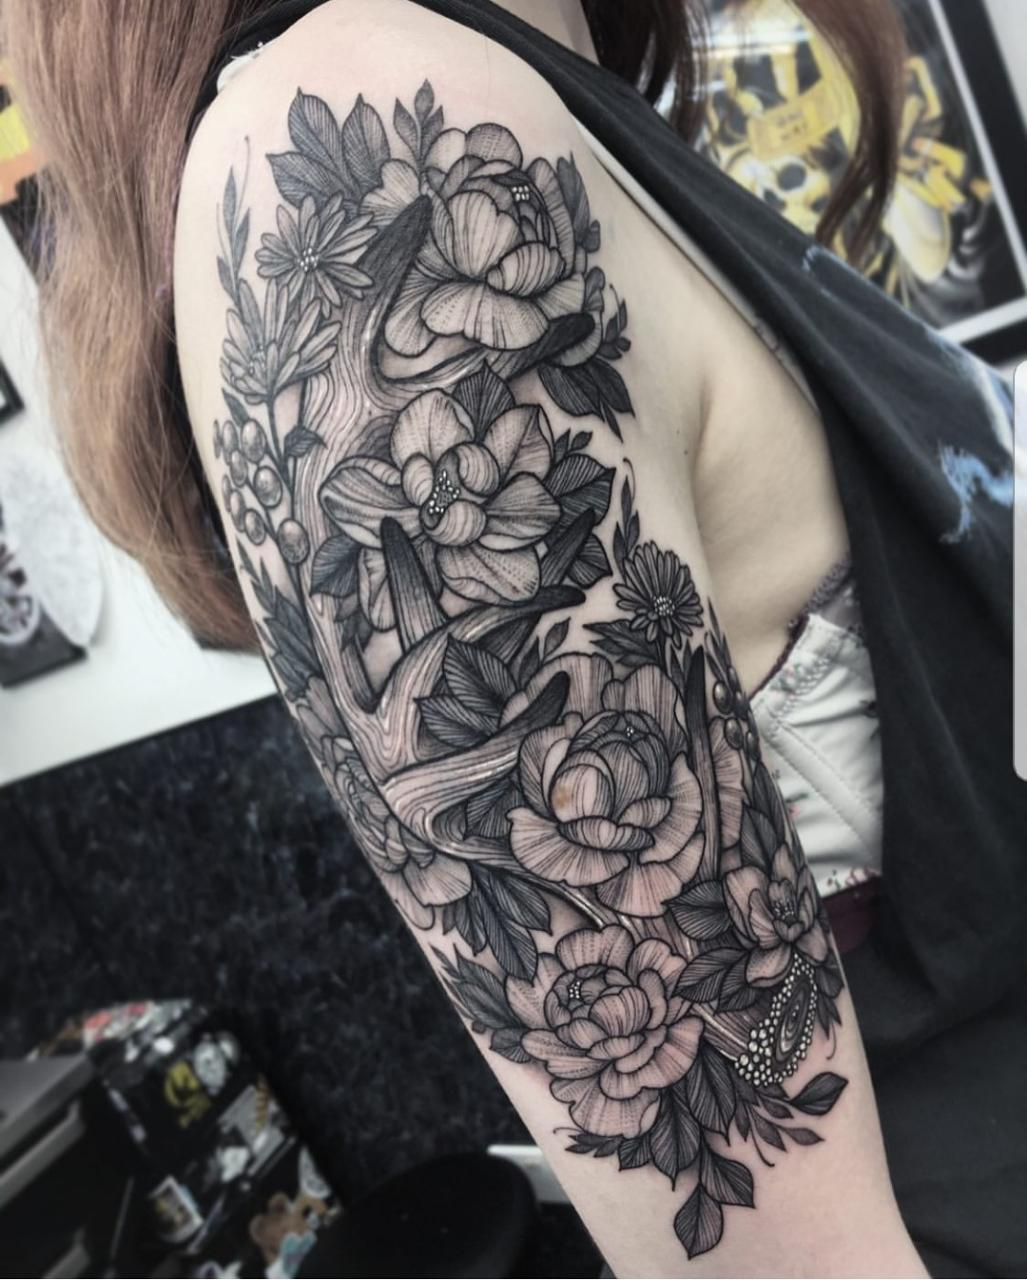 My newest and largest tattoo, fresh out the chair. Done by Poppy Luna at StudioXIII in Edinburgh, Scotland.